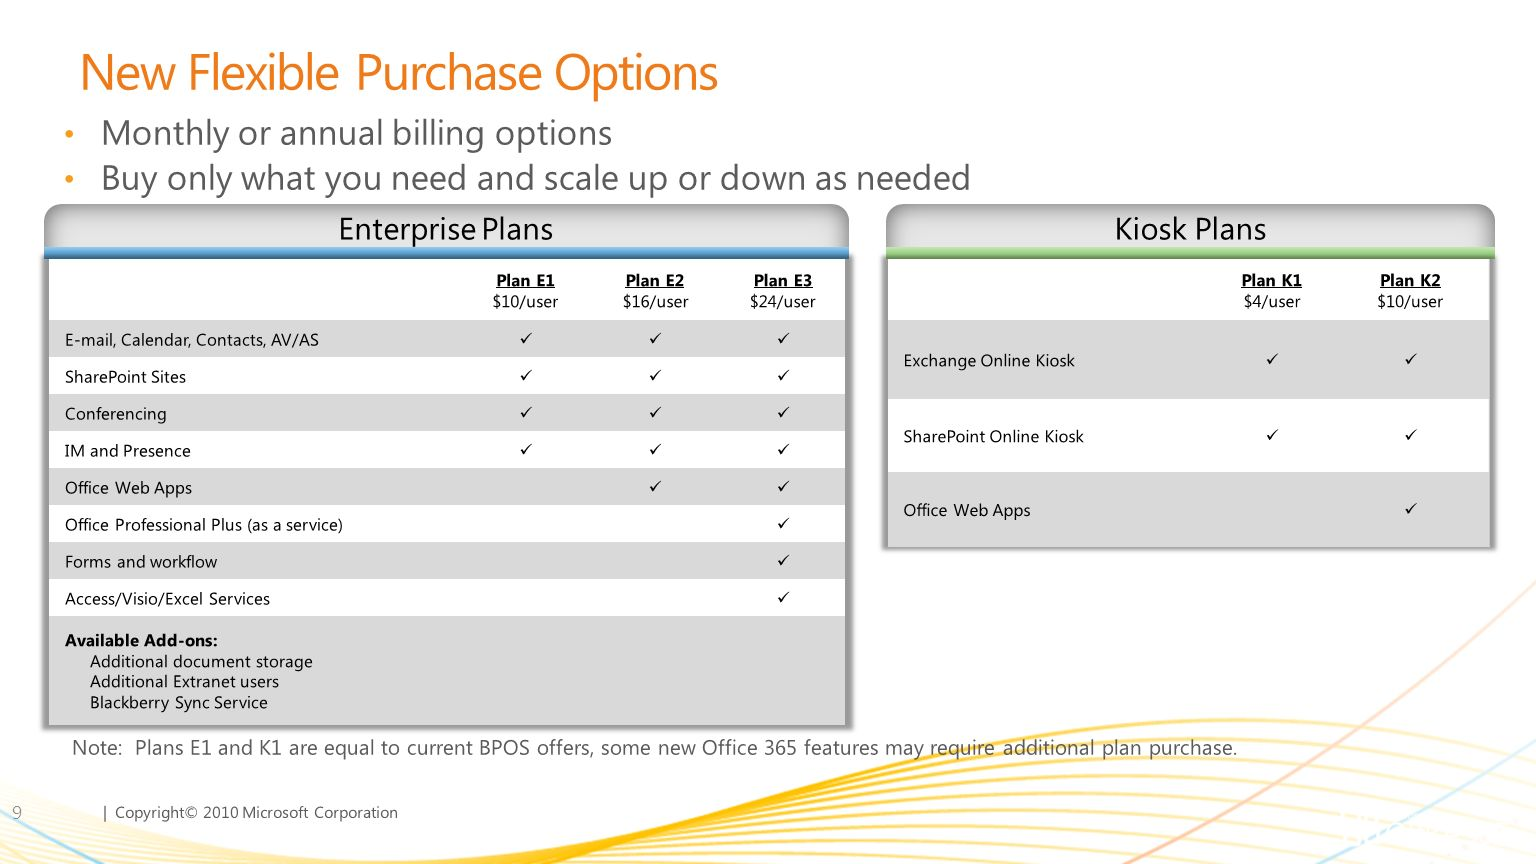 New Flexible Purchase Options